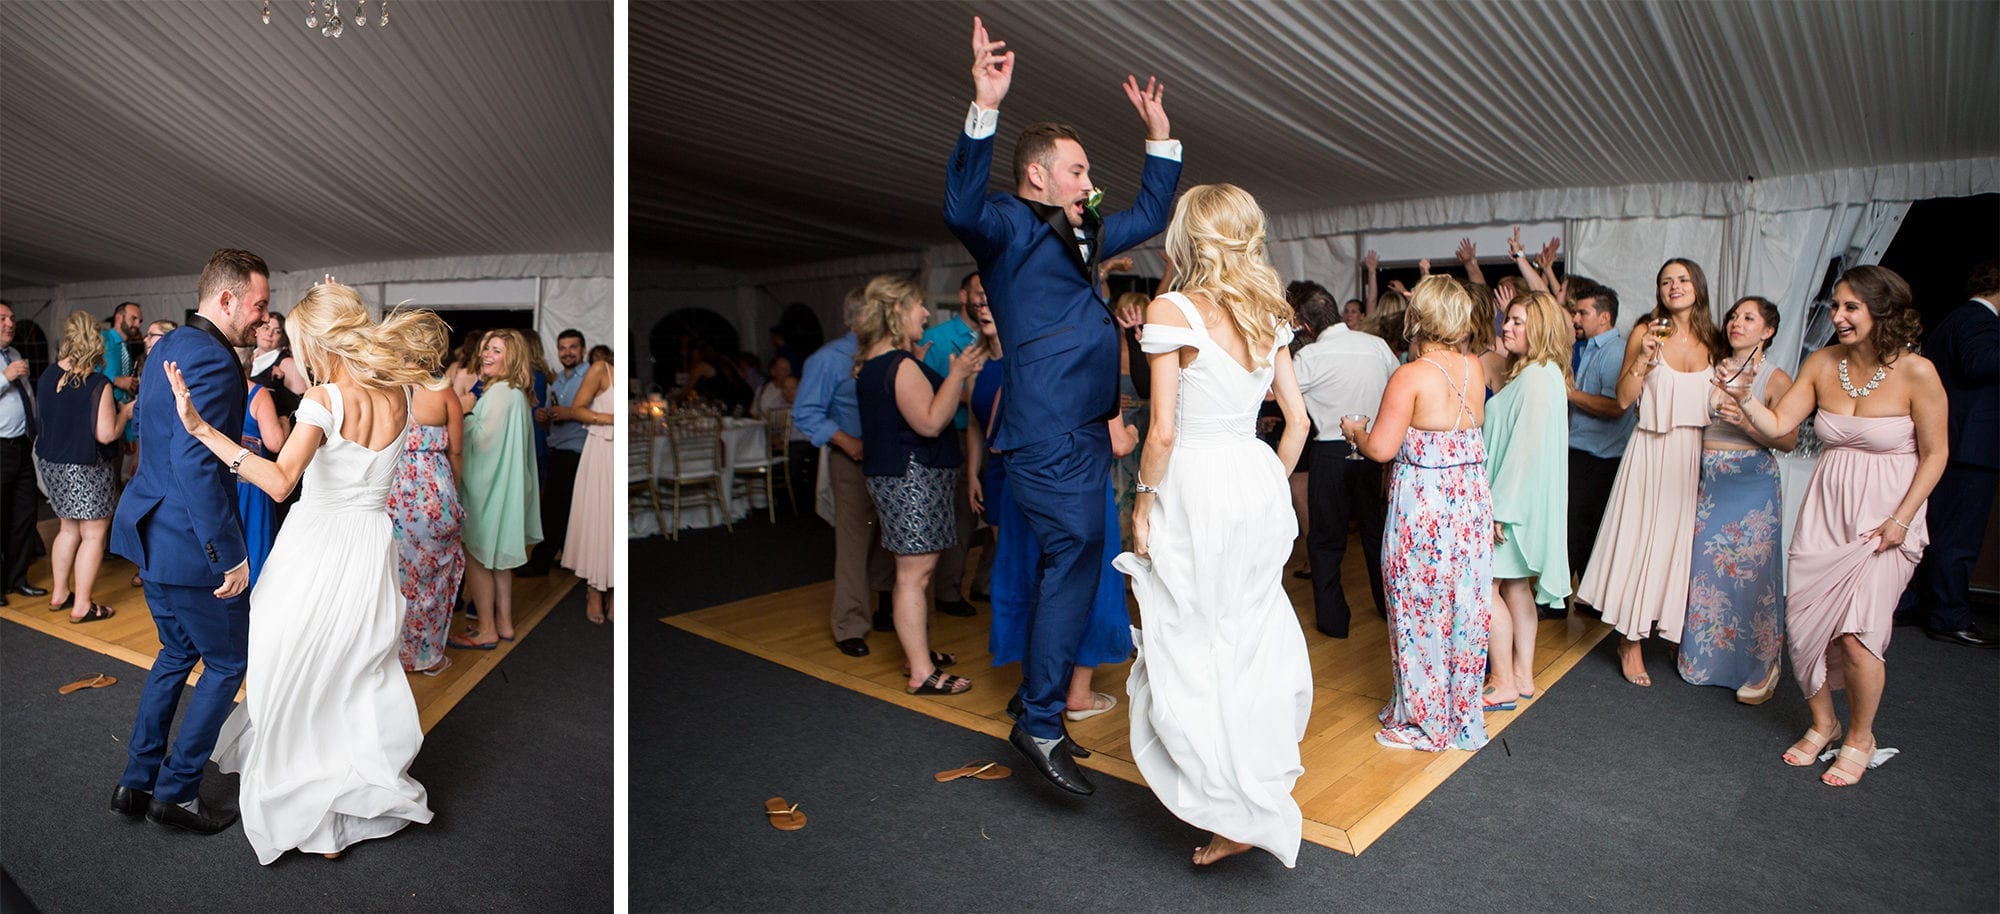 Reception Dance Legends Winery Wedding Zsuzsi Pal Photography